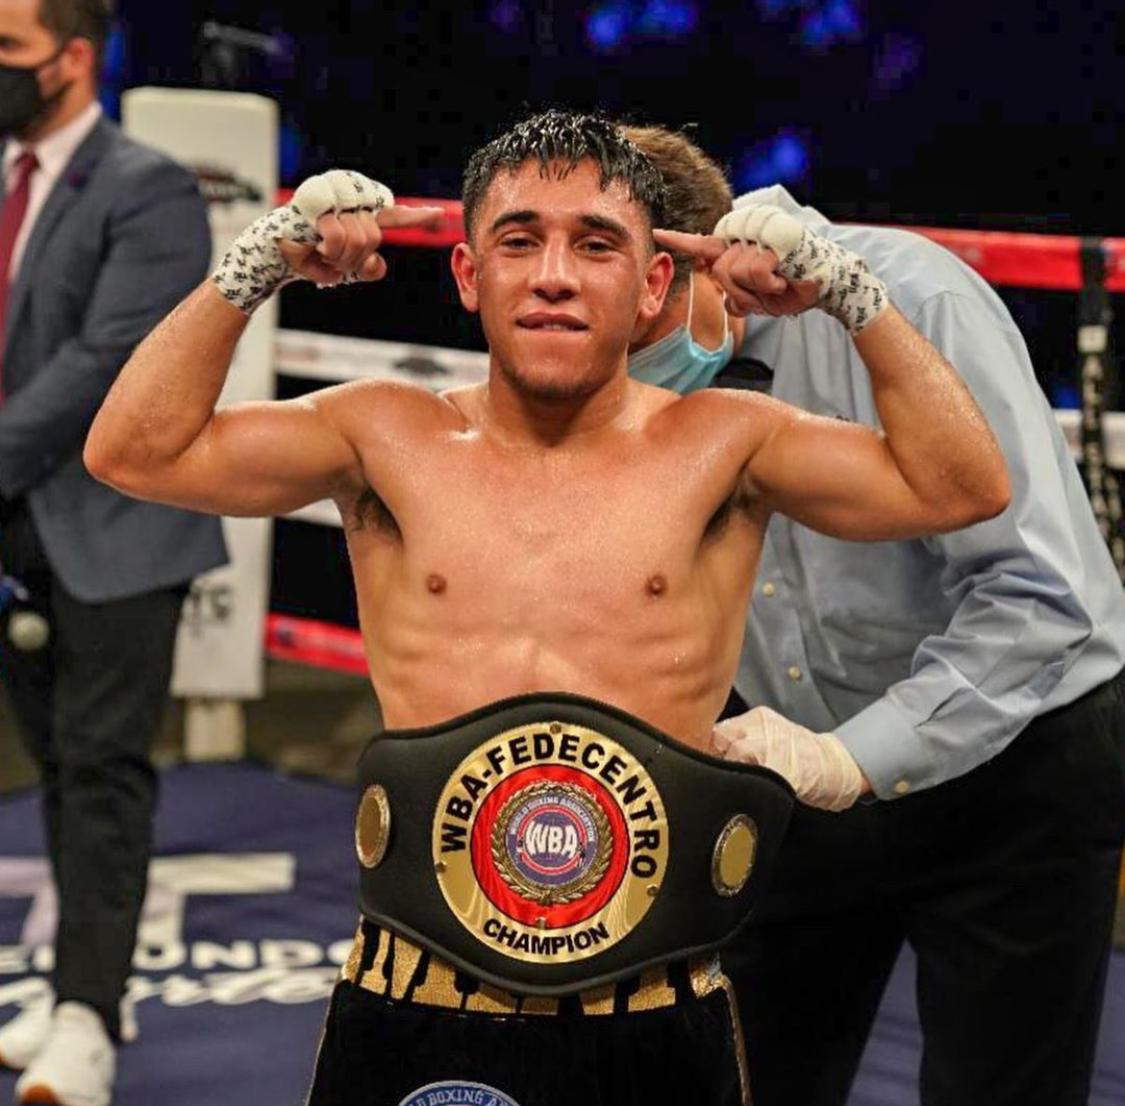 Aragon dominated Juarez and took the 108-pound WBA Fedecentro title